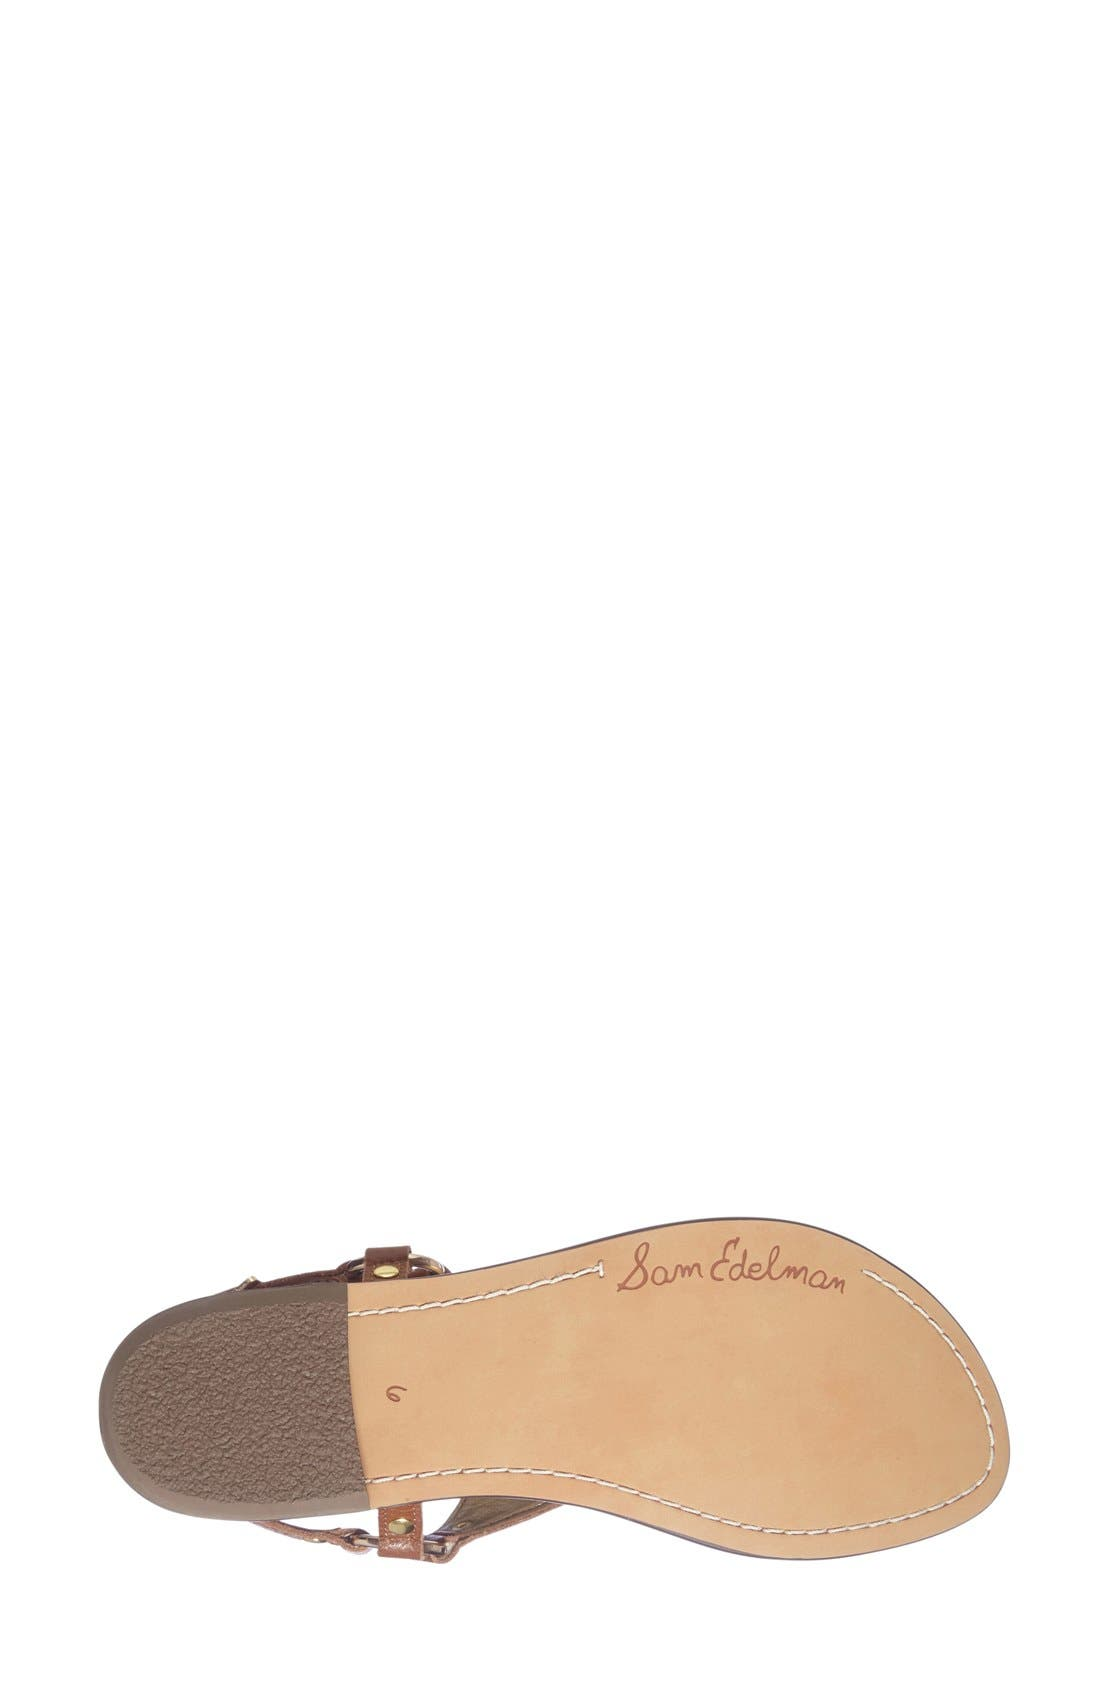 Greta Sandal,                             Alternate thumbnail 4, color,                             SOFT SADDLE LEATHER